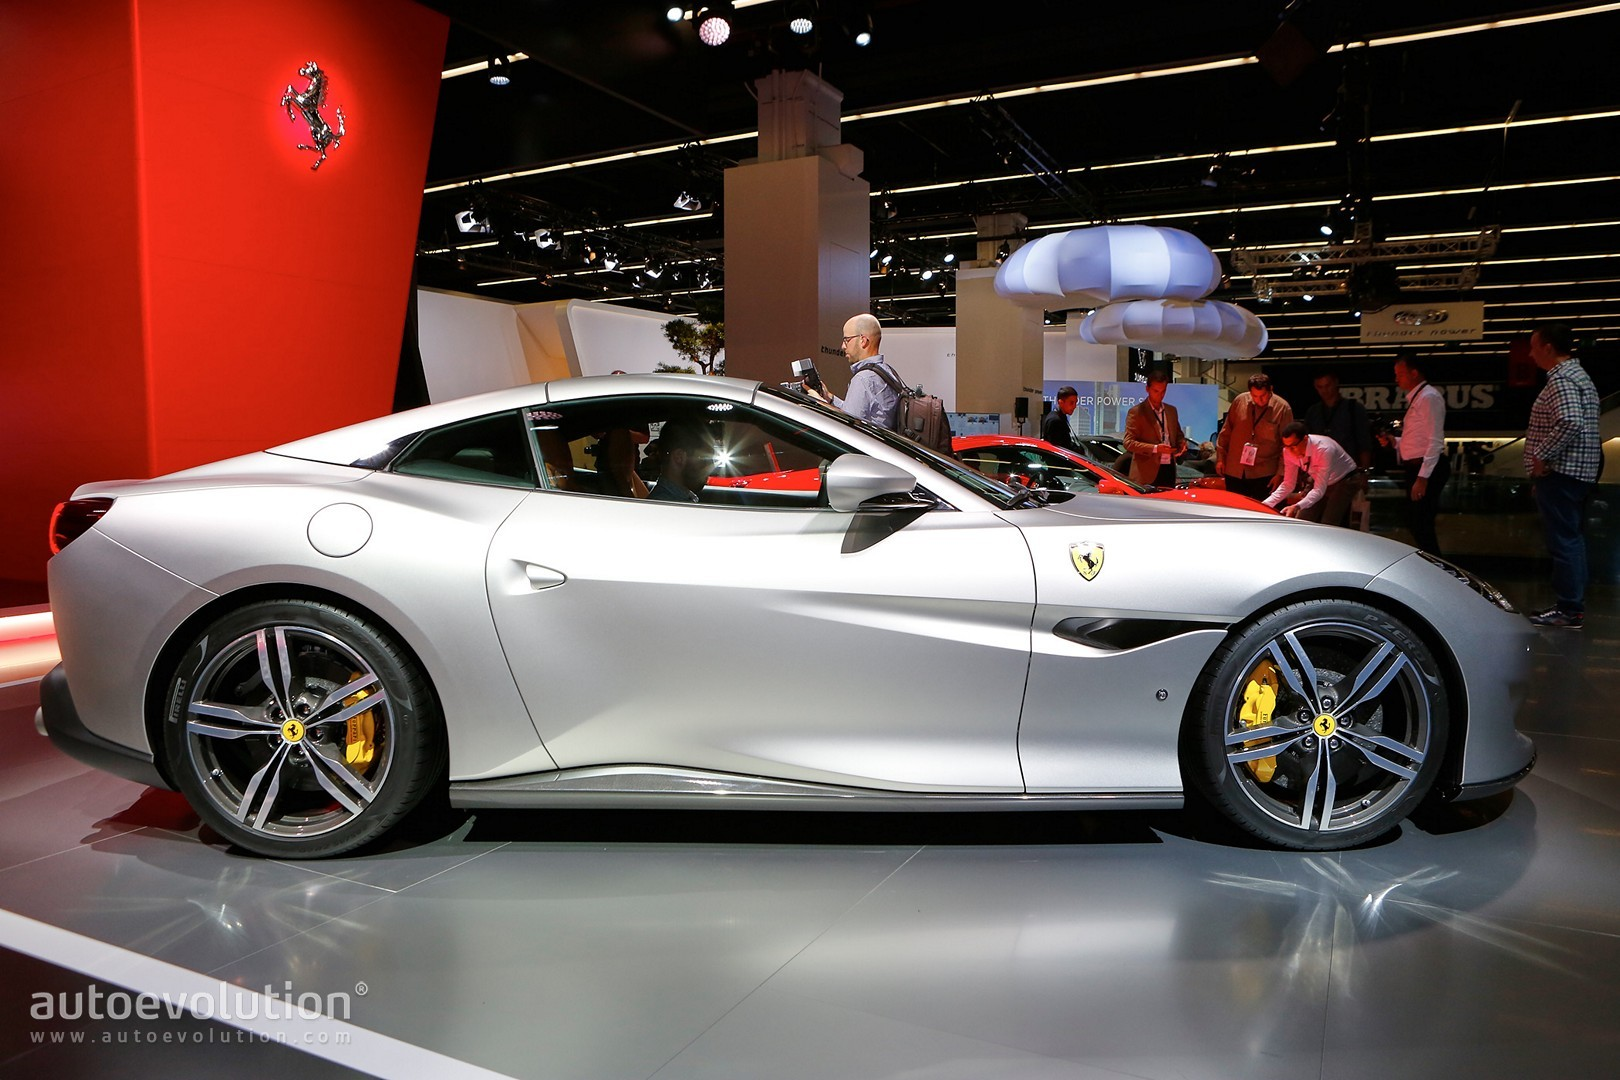 Ferrari On Course To Ramp Up Production Output To 9,000 ...